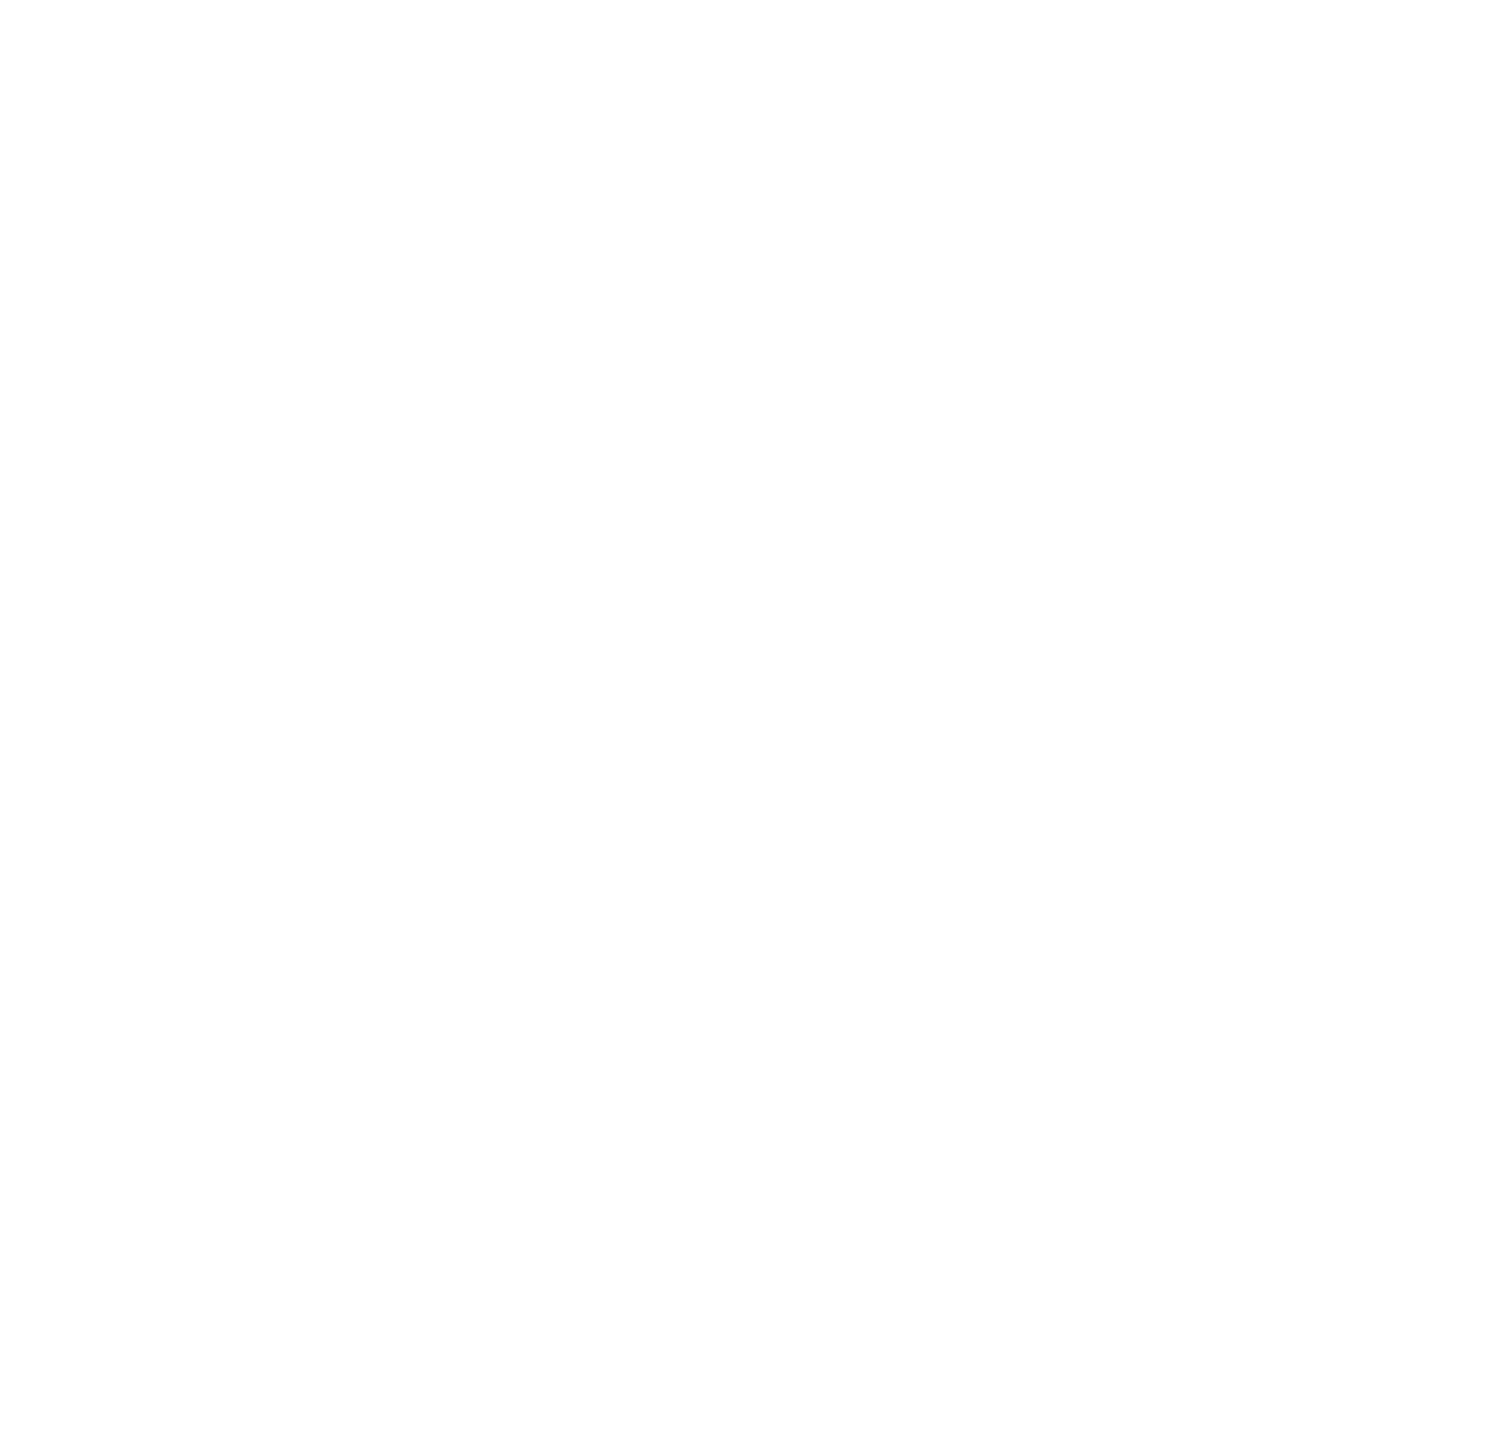 .birches Journal